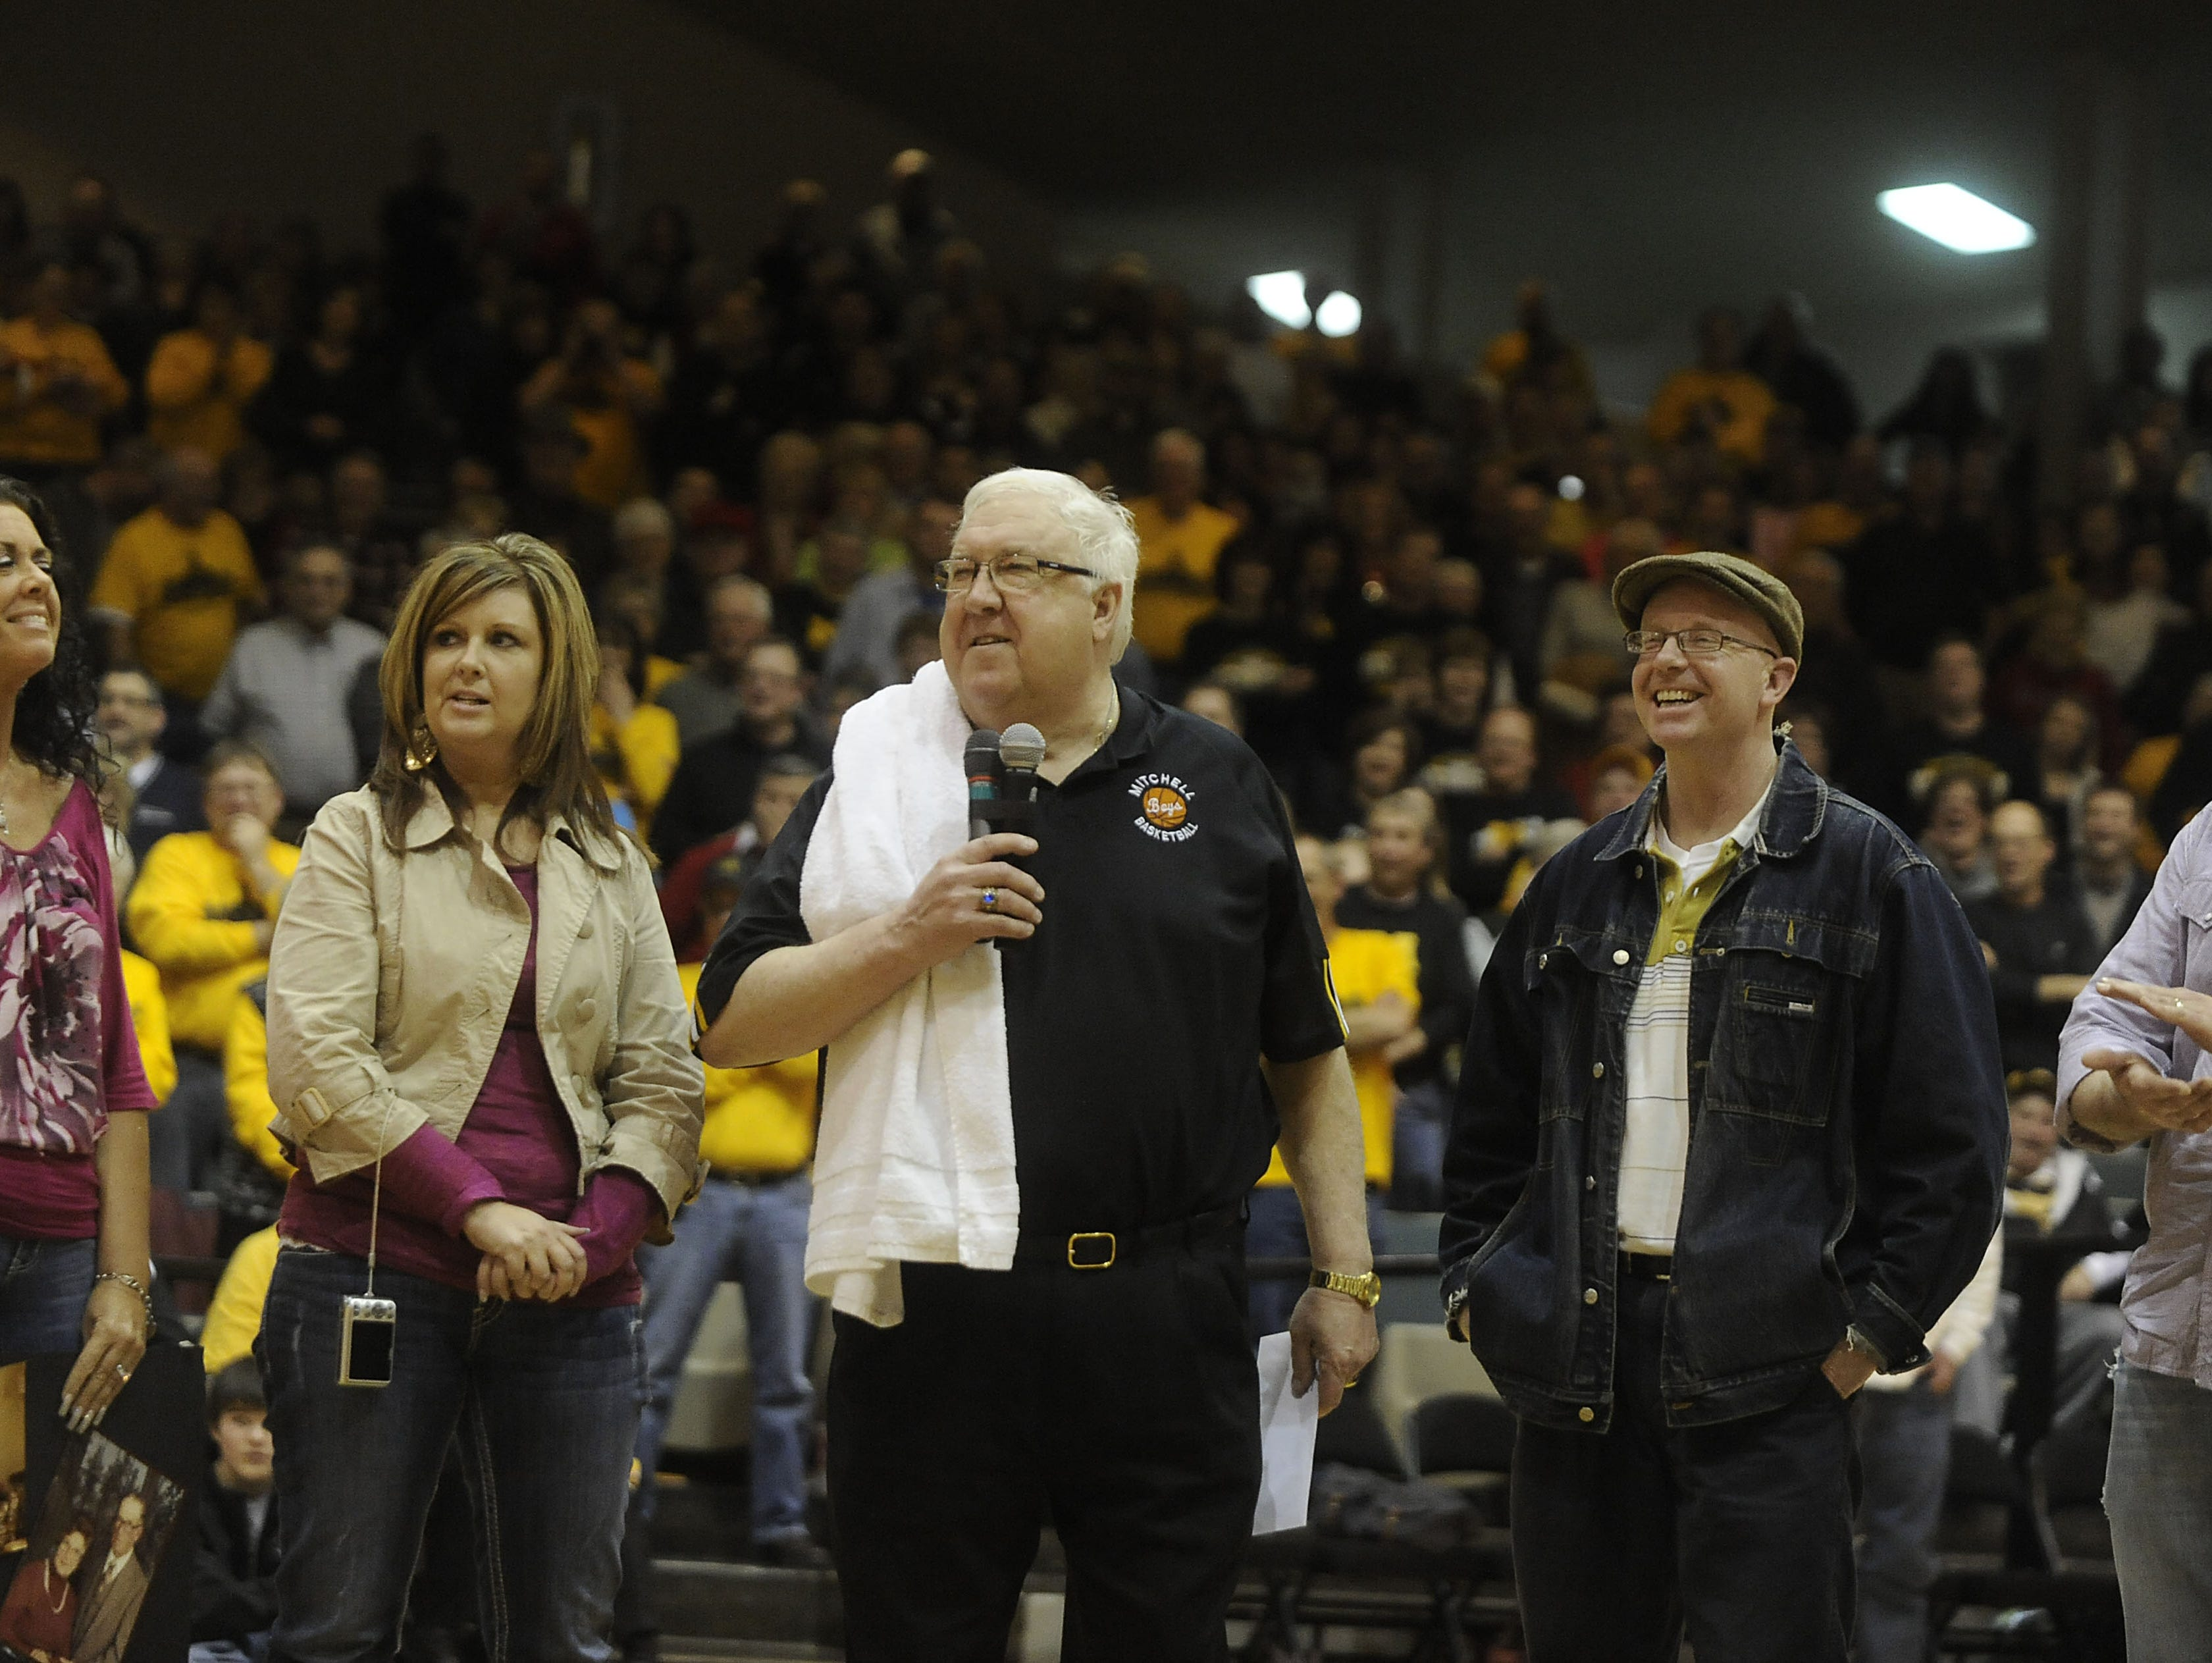 Mitchell High School boys basketball head coach Gary Munsen talks to former players, fans and spectators while his family members stand beside him after he was honored at the Corn Palace on Tuesday, Feb.14, 2012, in Mitchell, S.D. Munsen died Jan. 12, 2016.